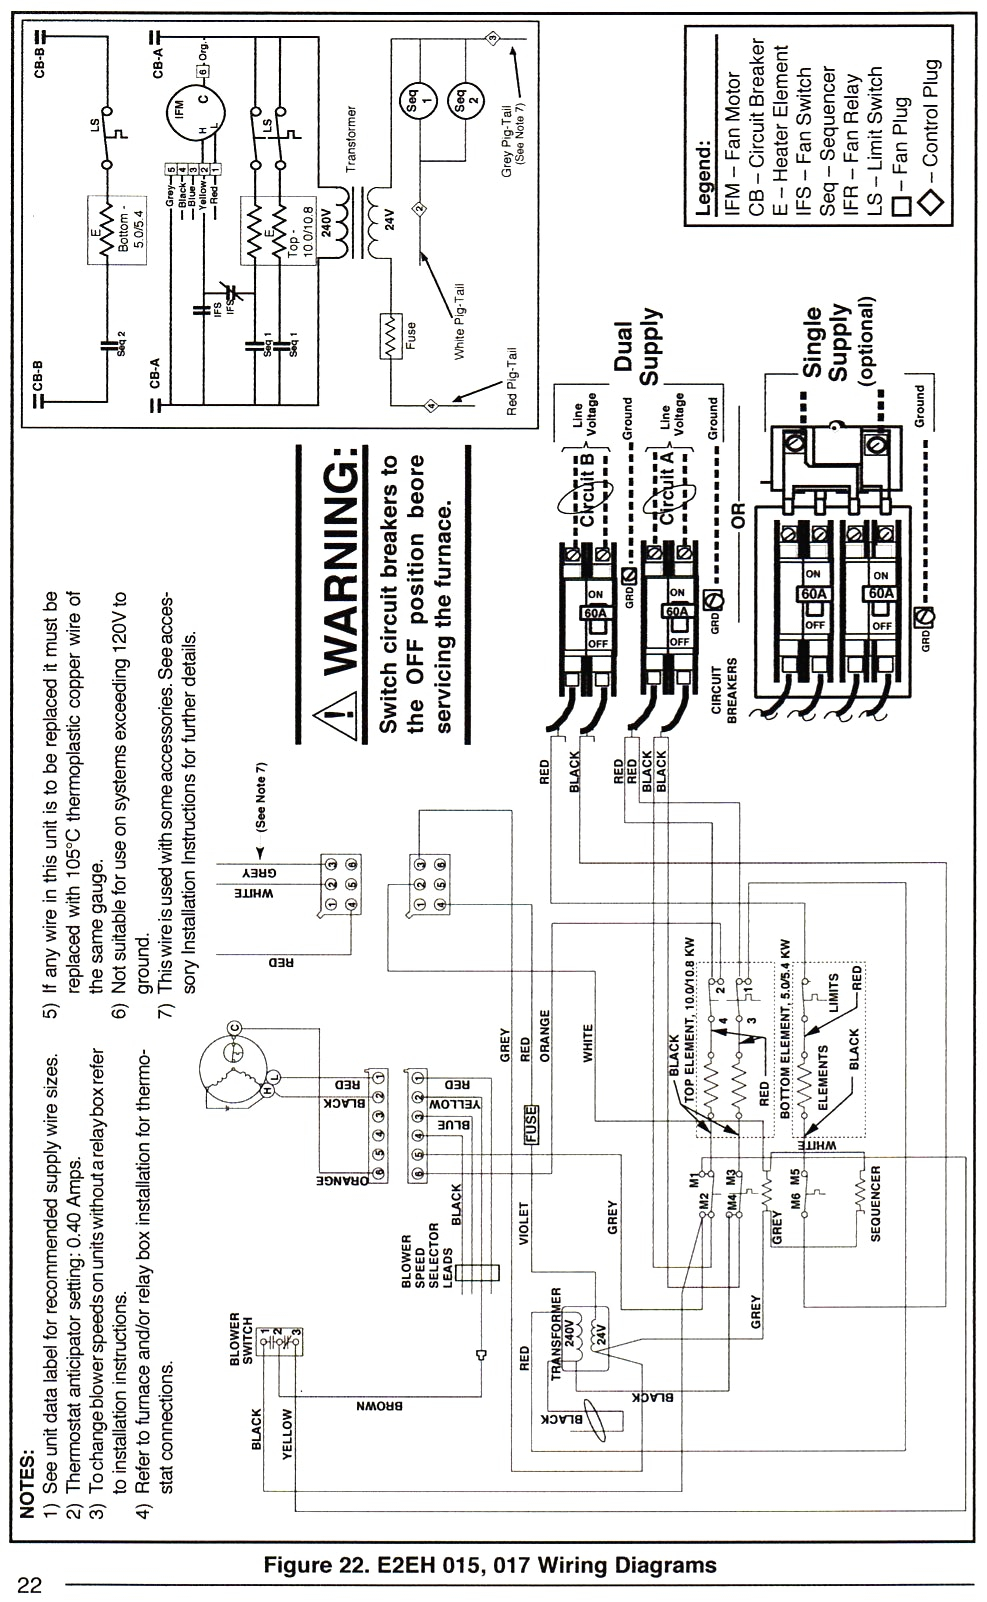 hight resolution of intertherm heat pump wiring diagram wiring diagram load heat nordyne diagram wiring pump modlegqf090100324 wiring diagram